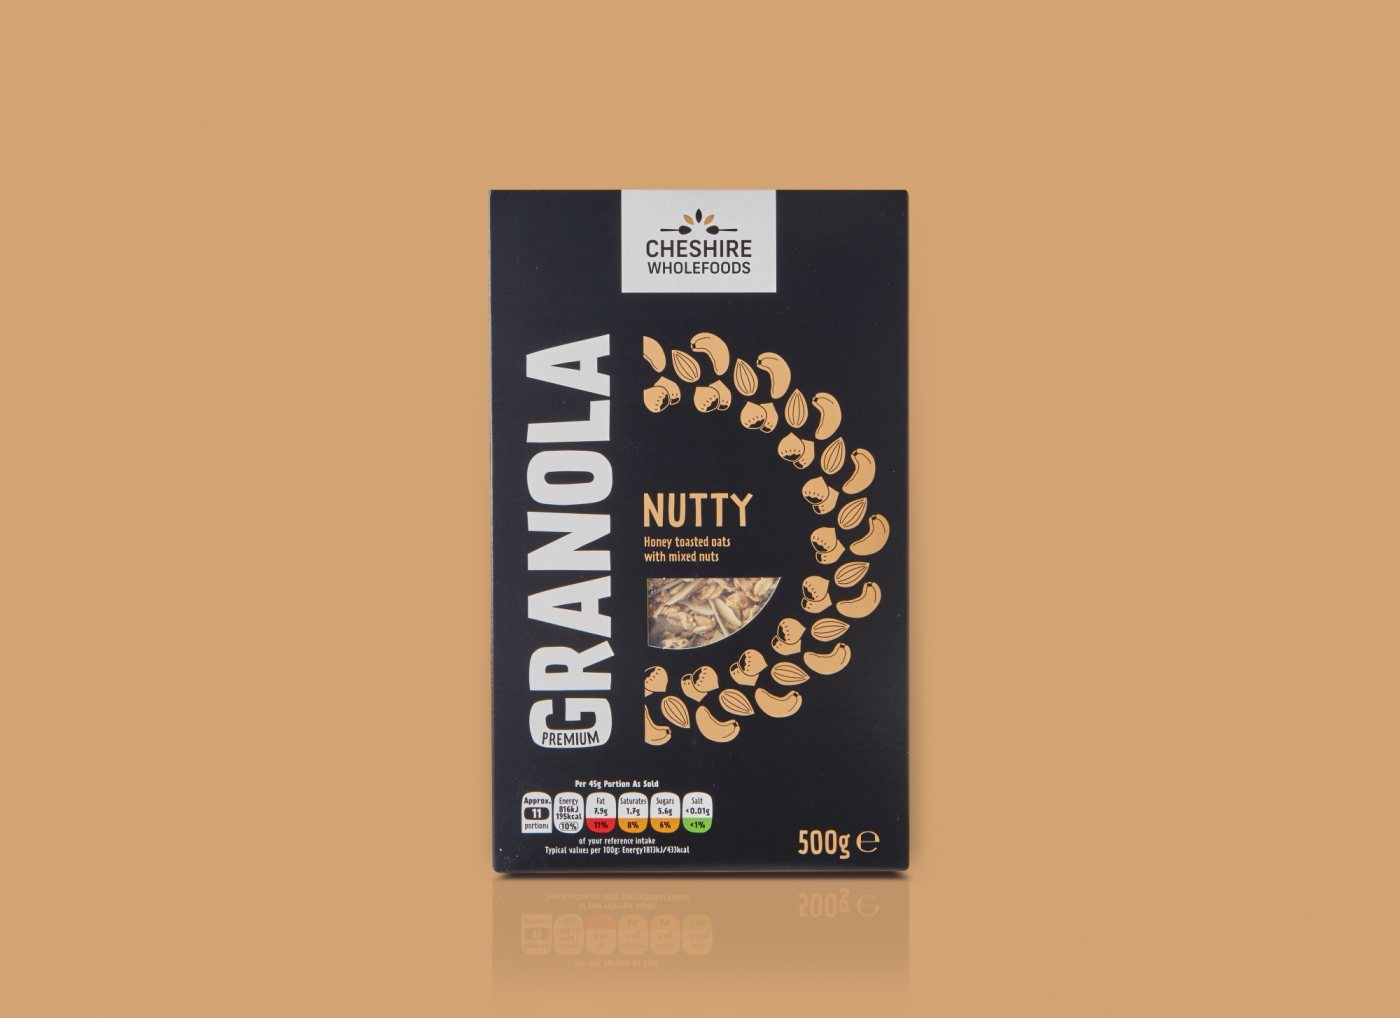 Cheshire Wholefoods Granola Packaging Design